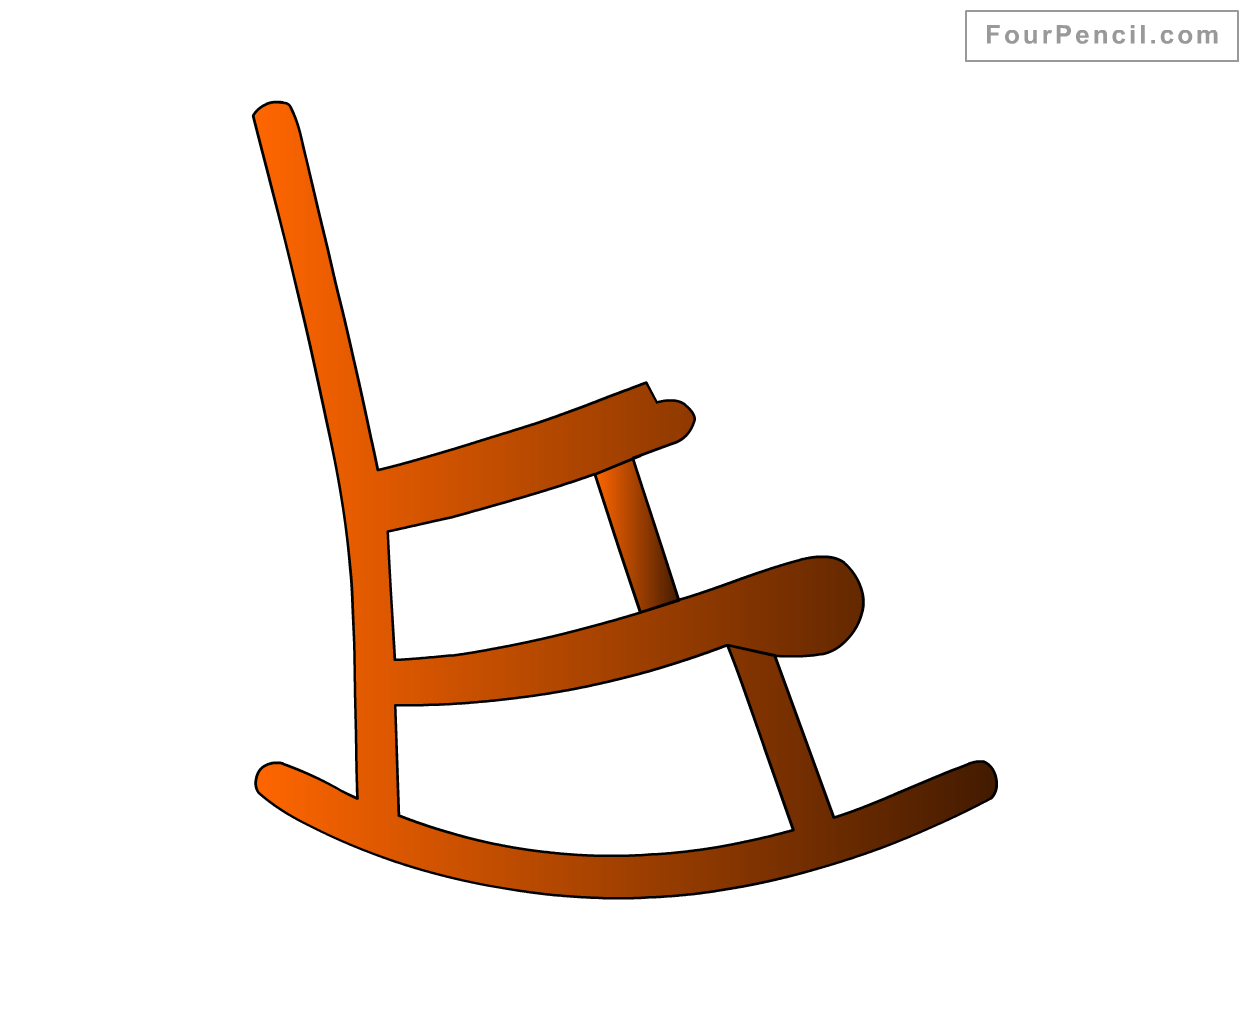 Chair drawing for kids - How To Draw Rocking Chair For Kids Step By Step Drawing Tutorial Draw Rocking Chair